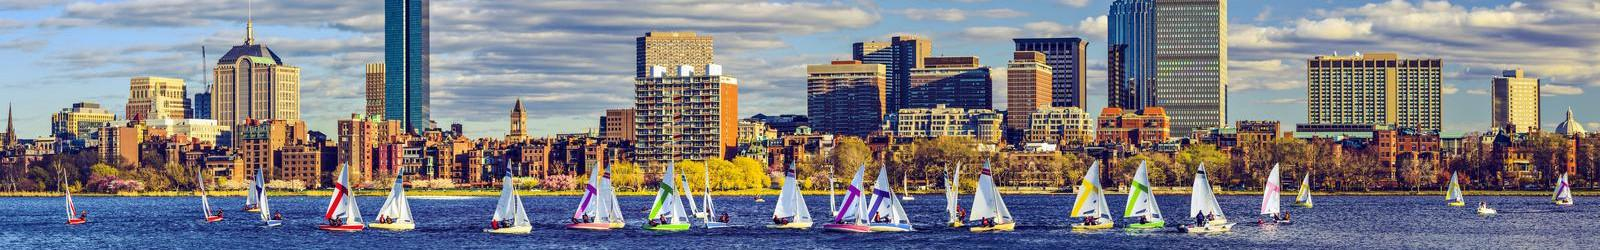 Parenting therapists in Boston, Massachusetts